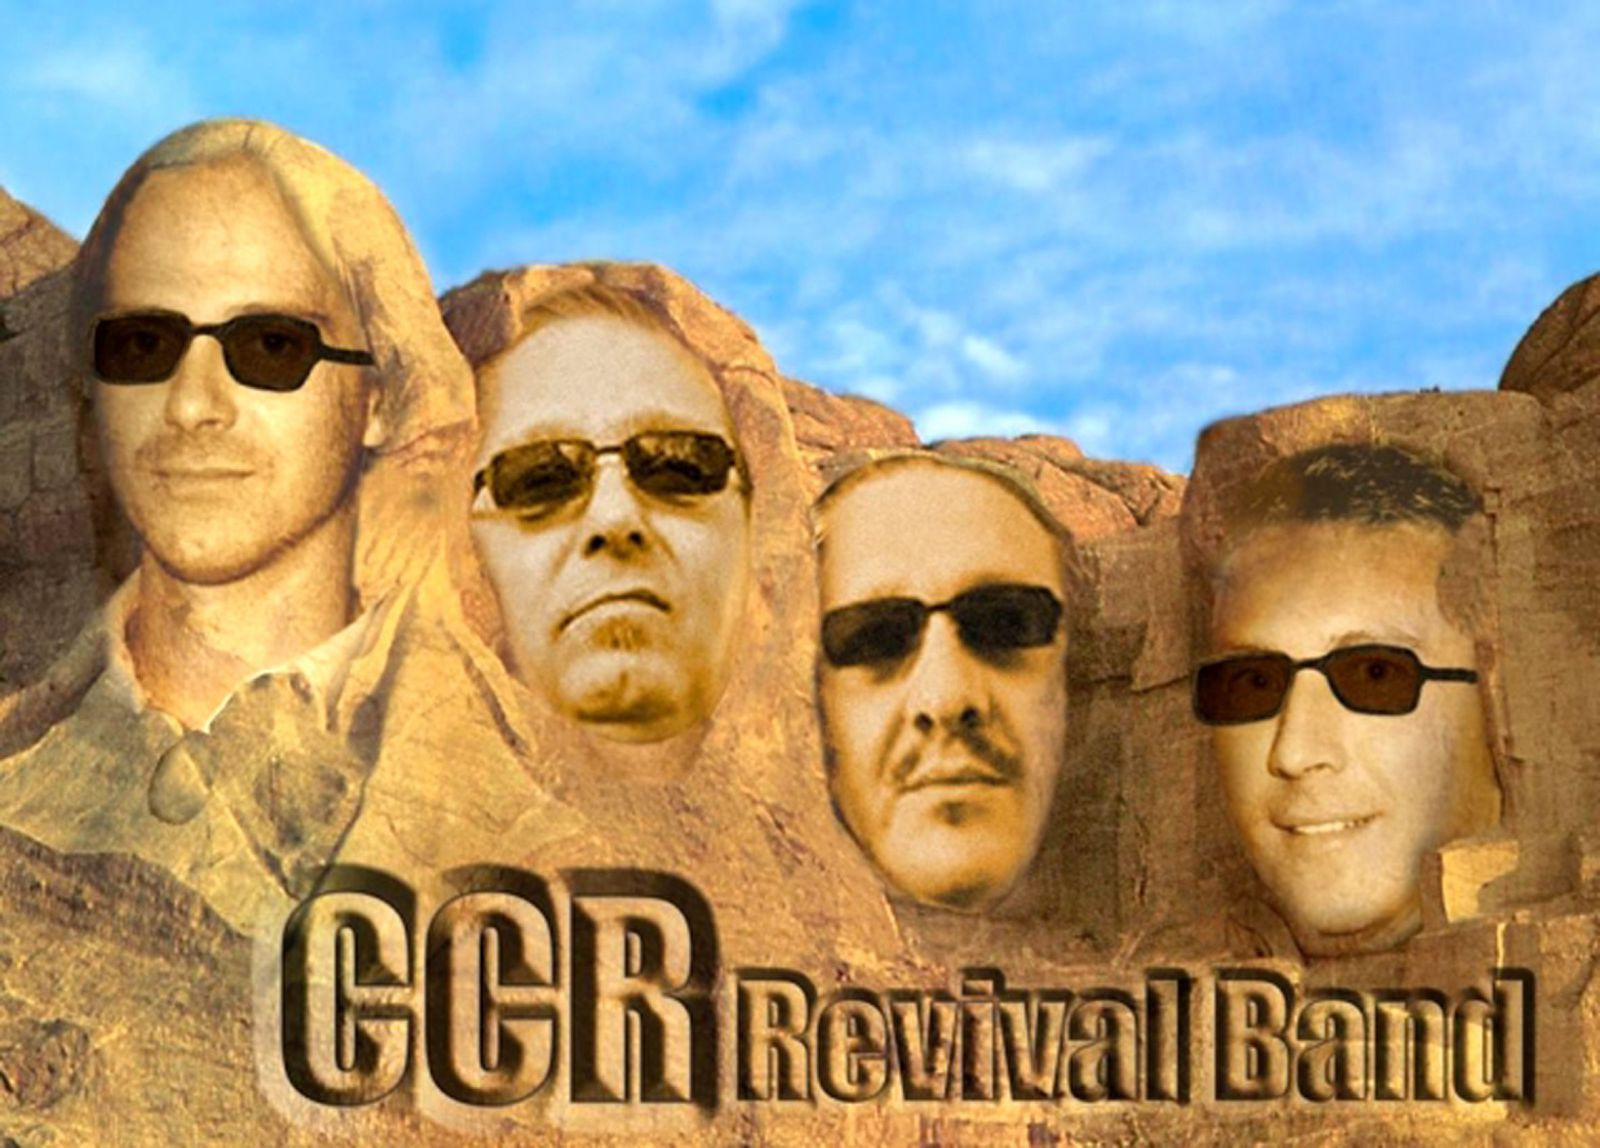 CCR Revival Band rushmoure_gross